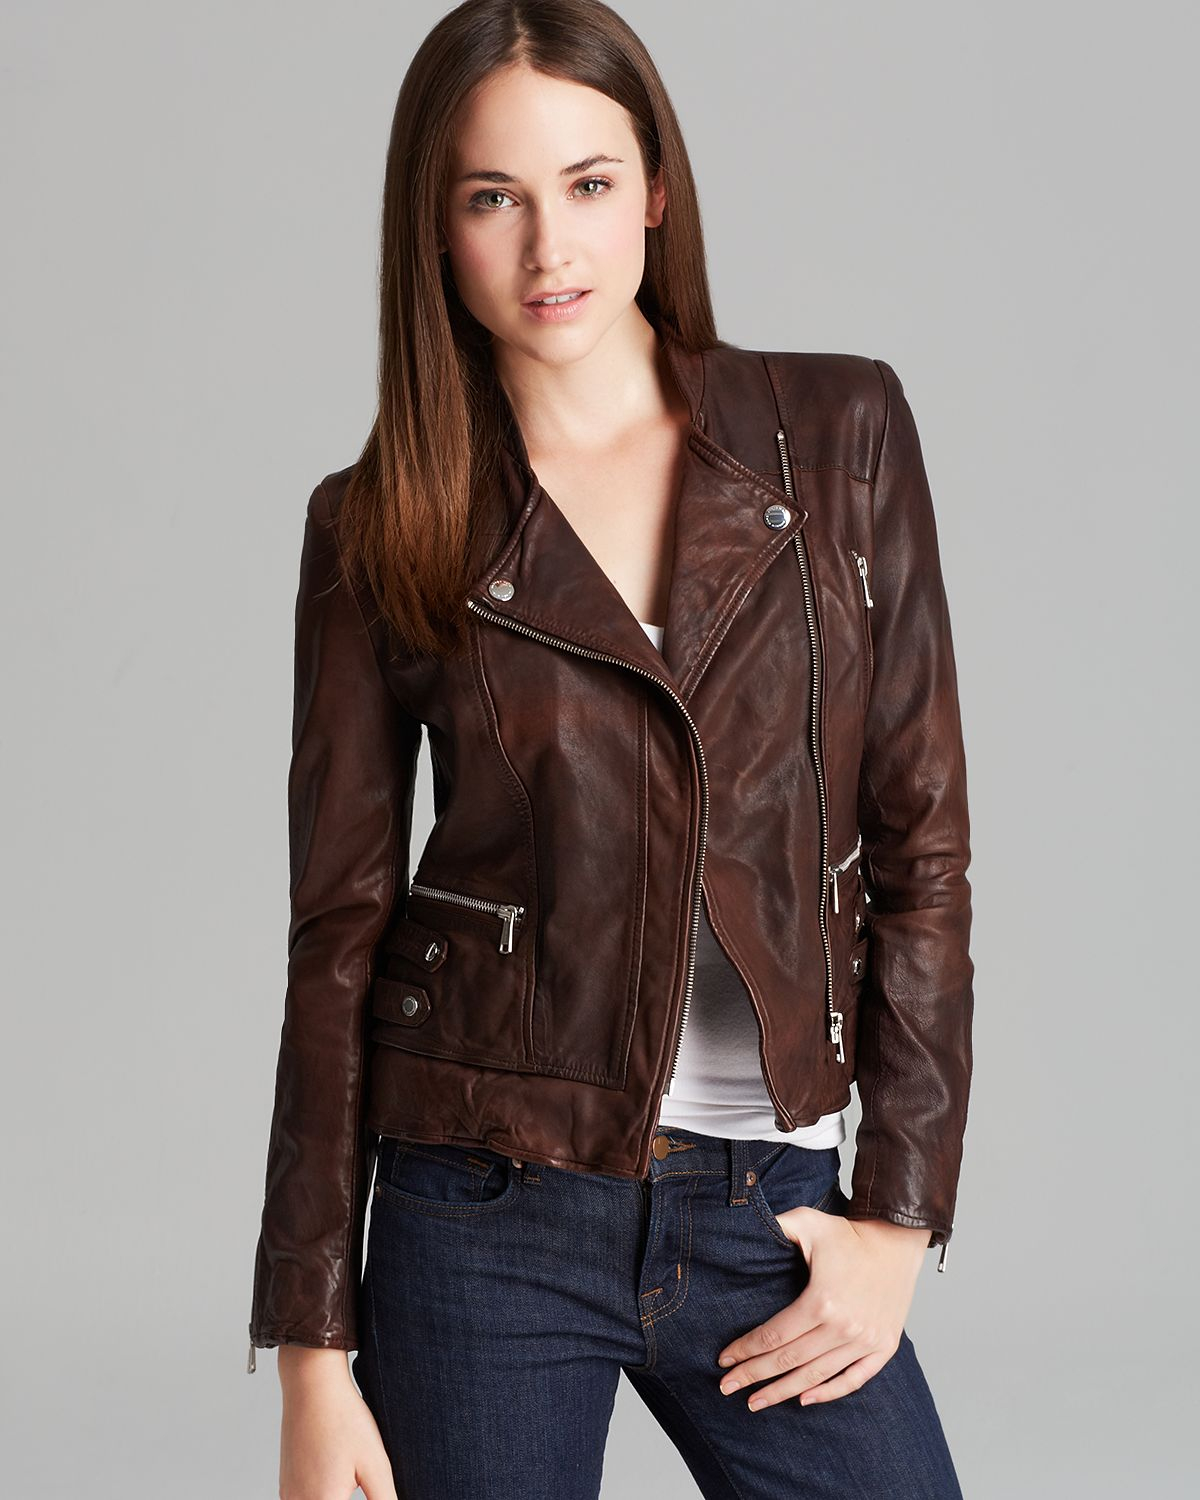 Brown Leather Jackets Women - Jacket